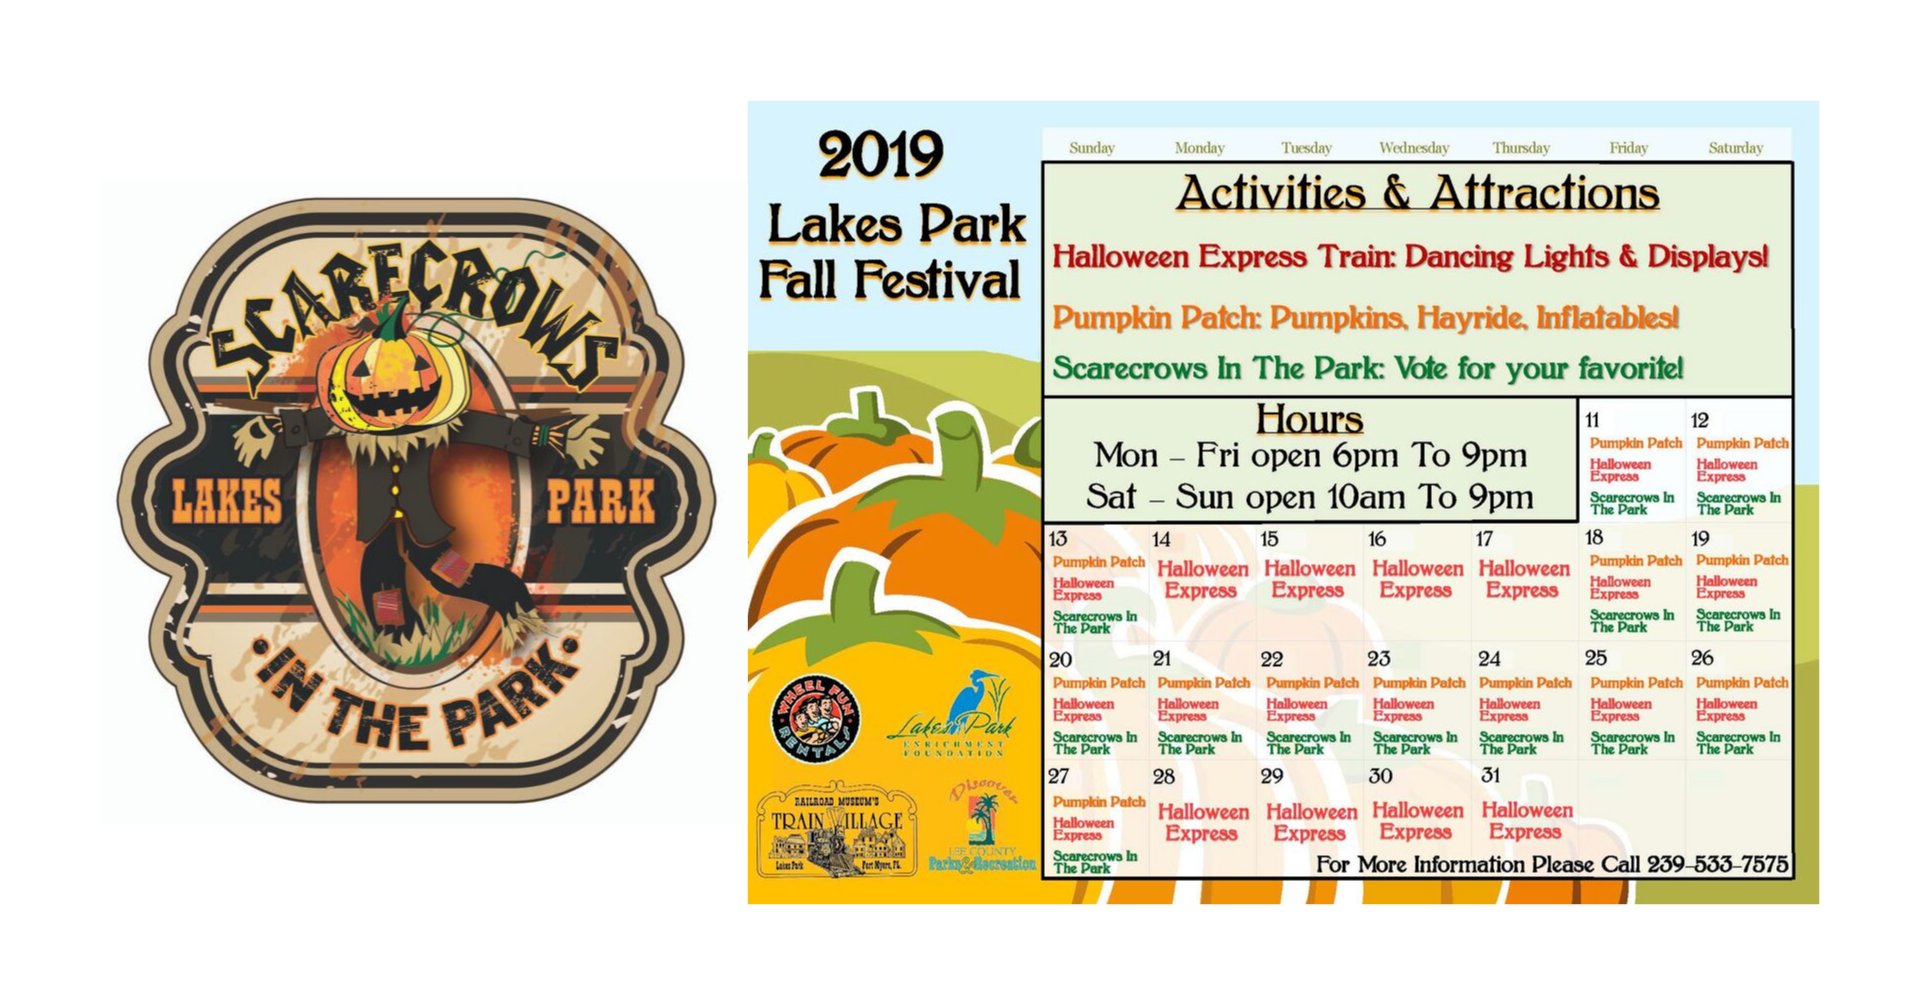 Schedule for the 10th annual Scarecrows in the Park competition